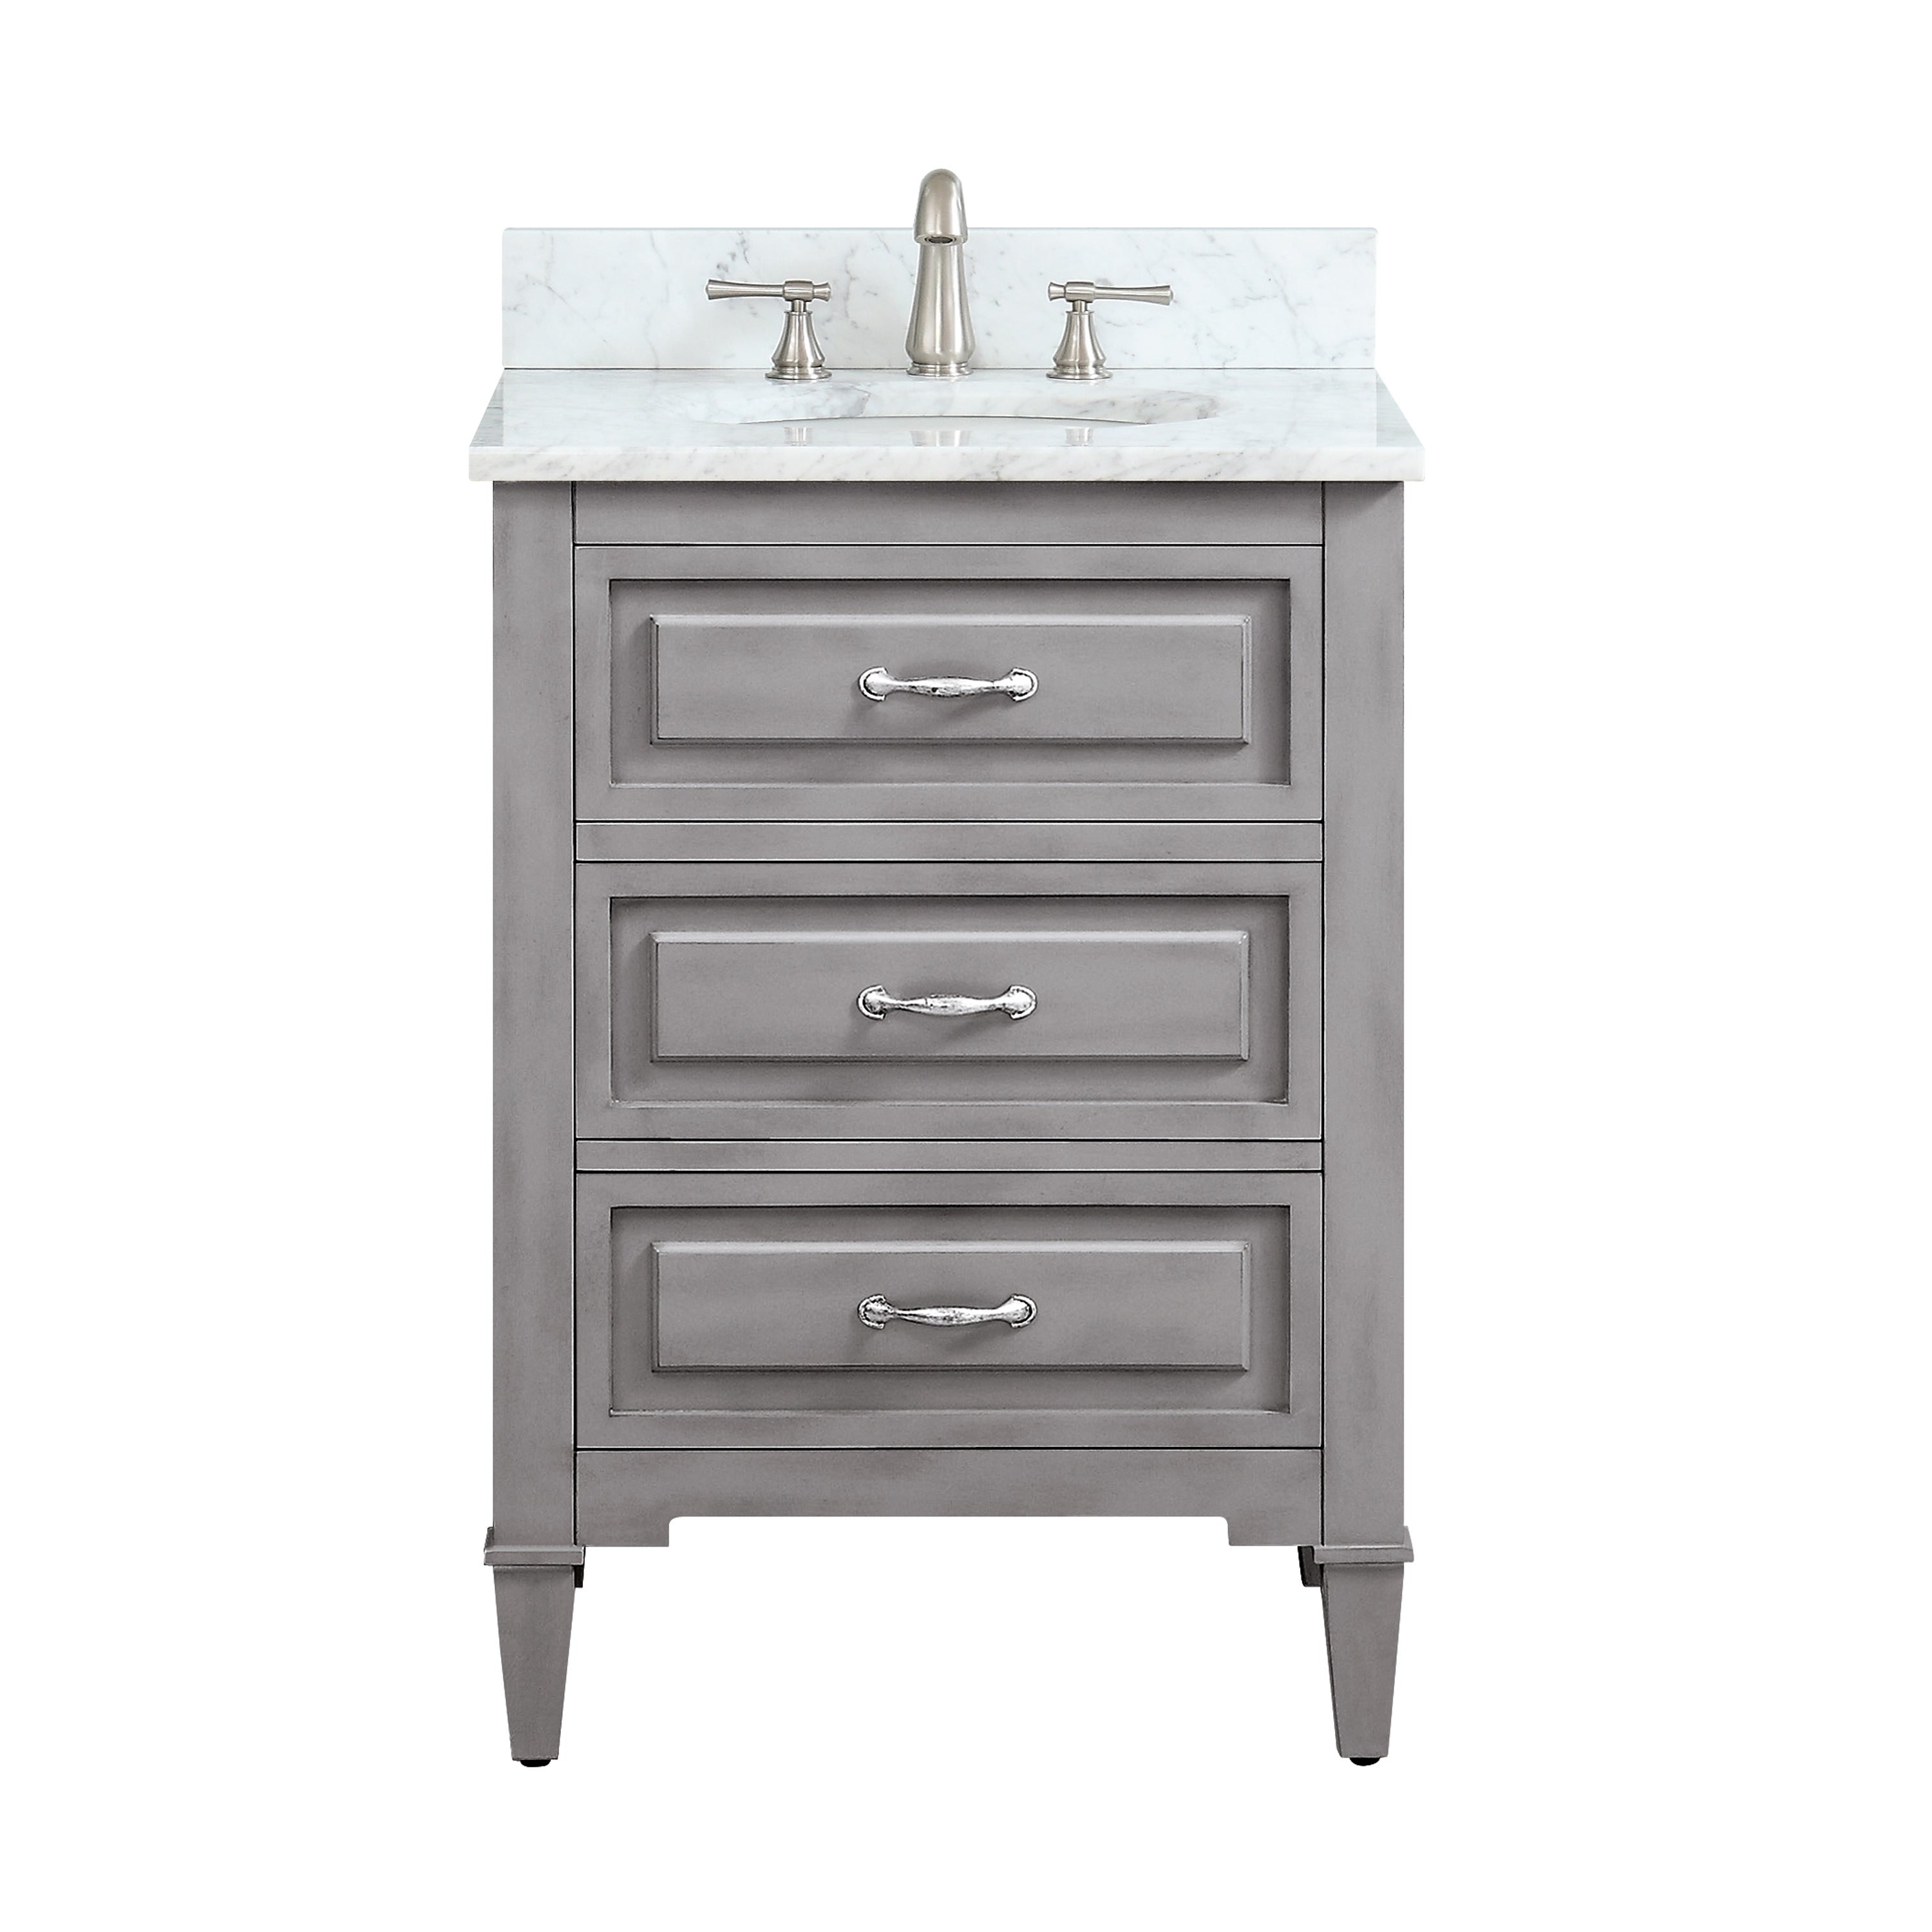 Avanity Kelly 24 Inch Vanity Combo In Grayish Blue With Top And Sink